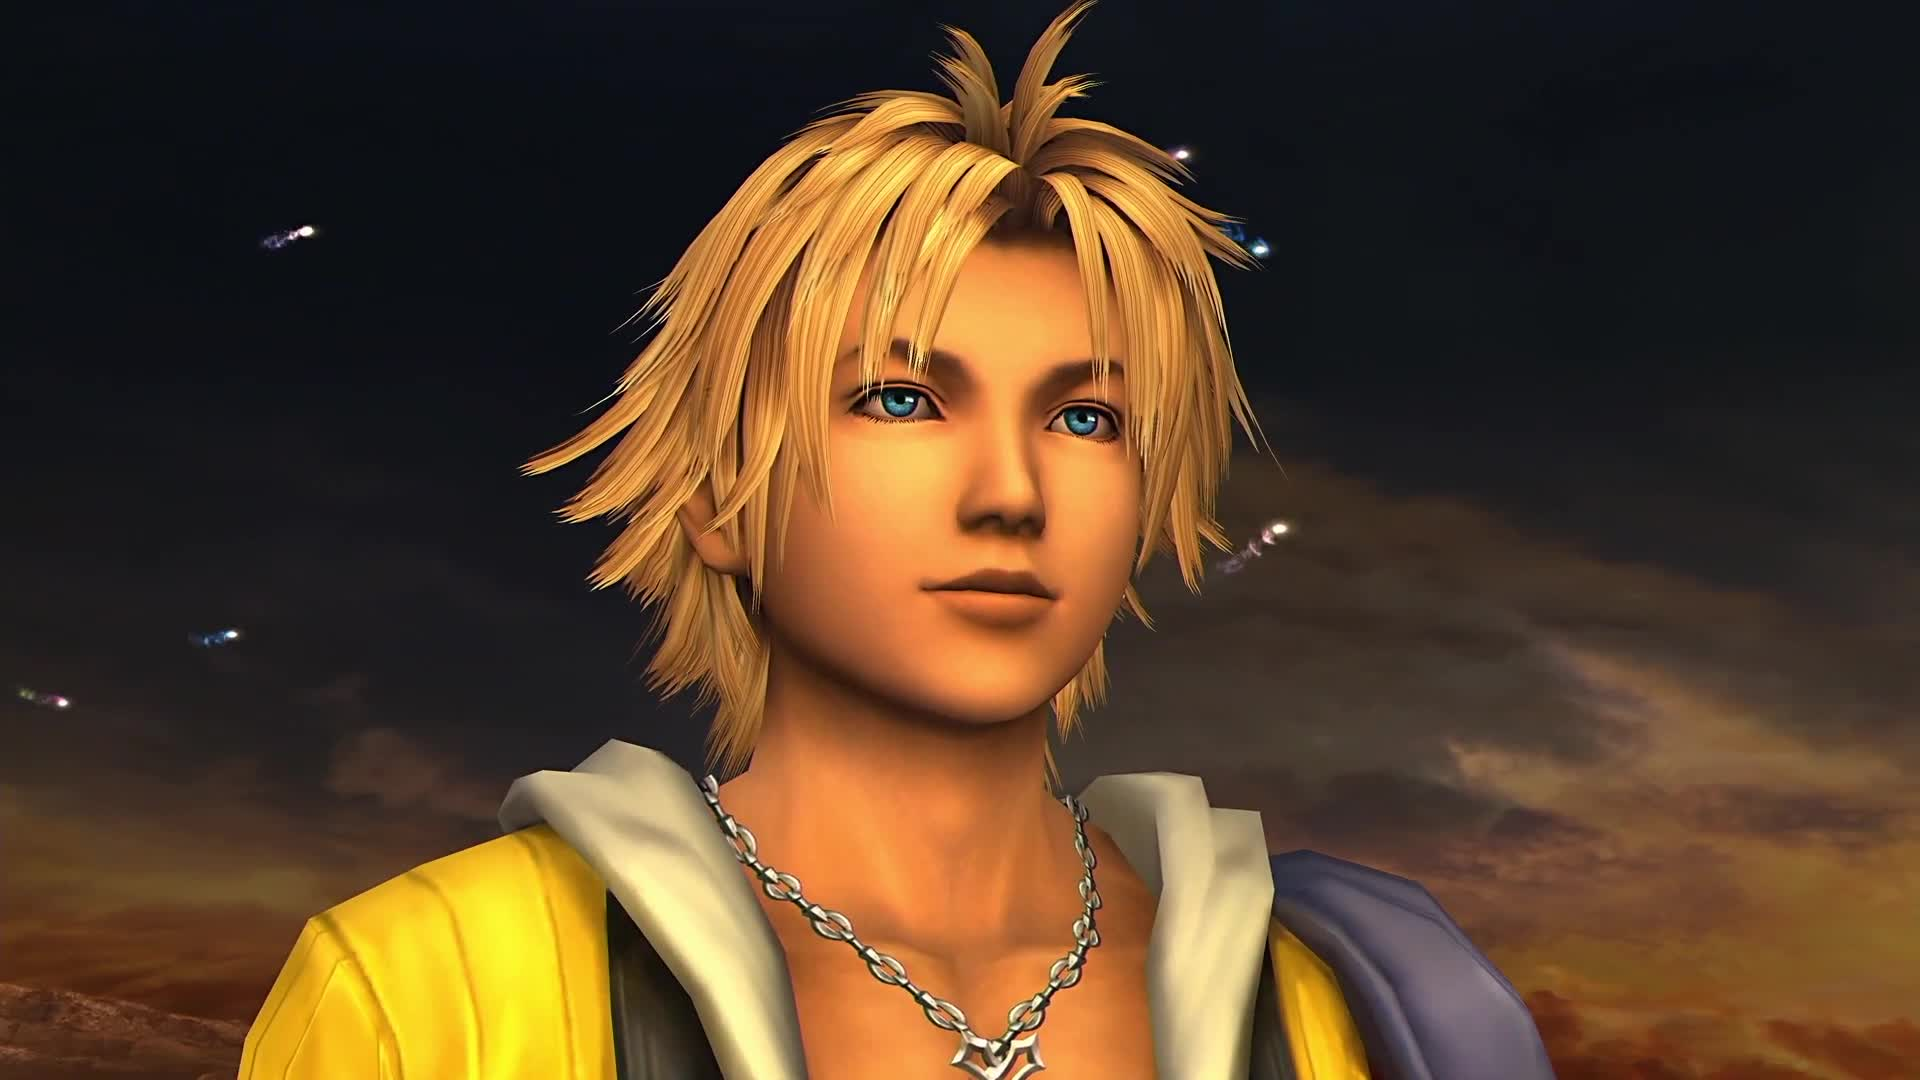 Final Fantasy X/X-2 HD Remaster  - Launch trailer